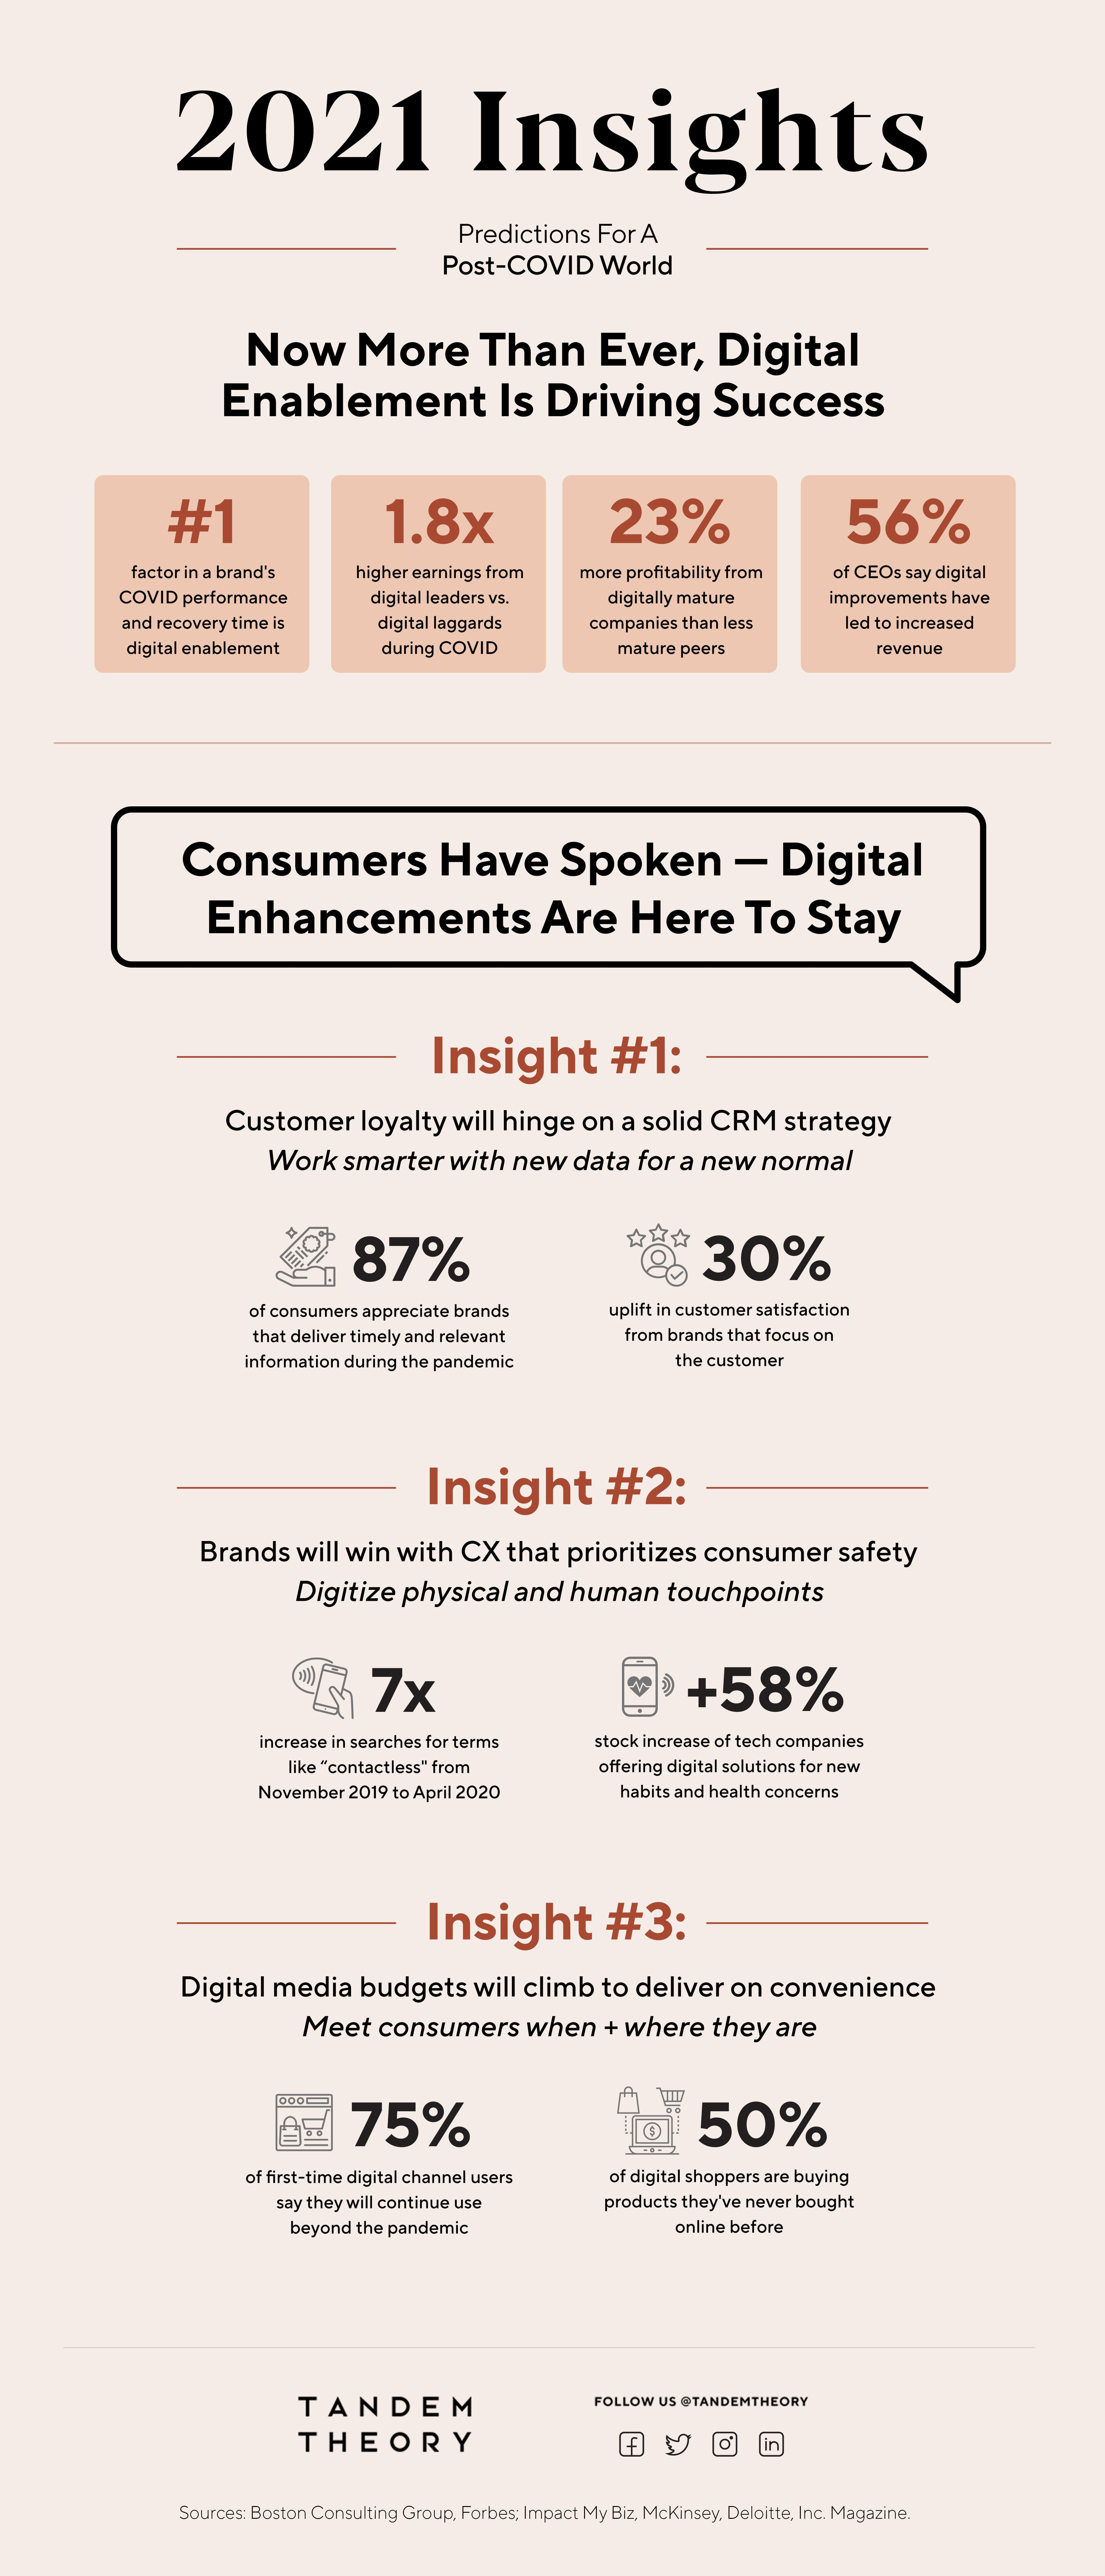 2021 Insights: Three Digital Priorities for a Post-COVID World Image